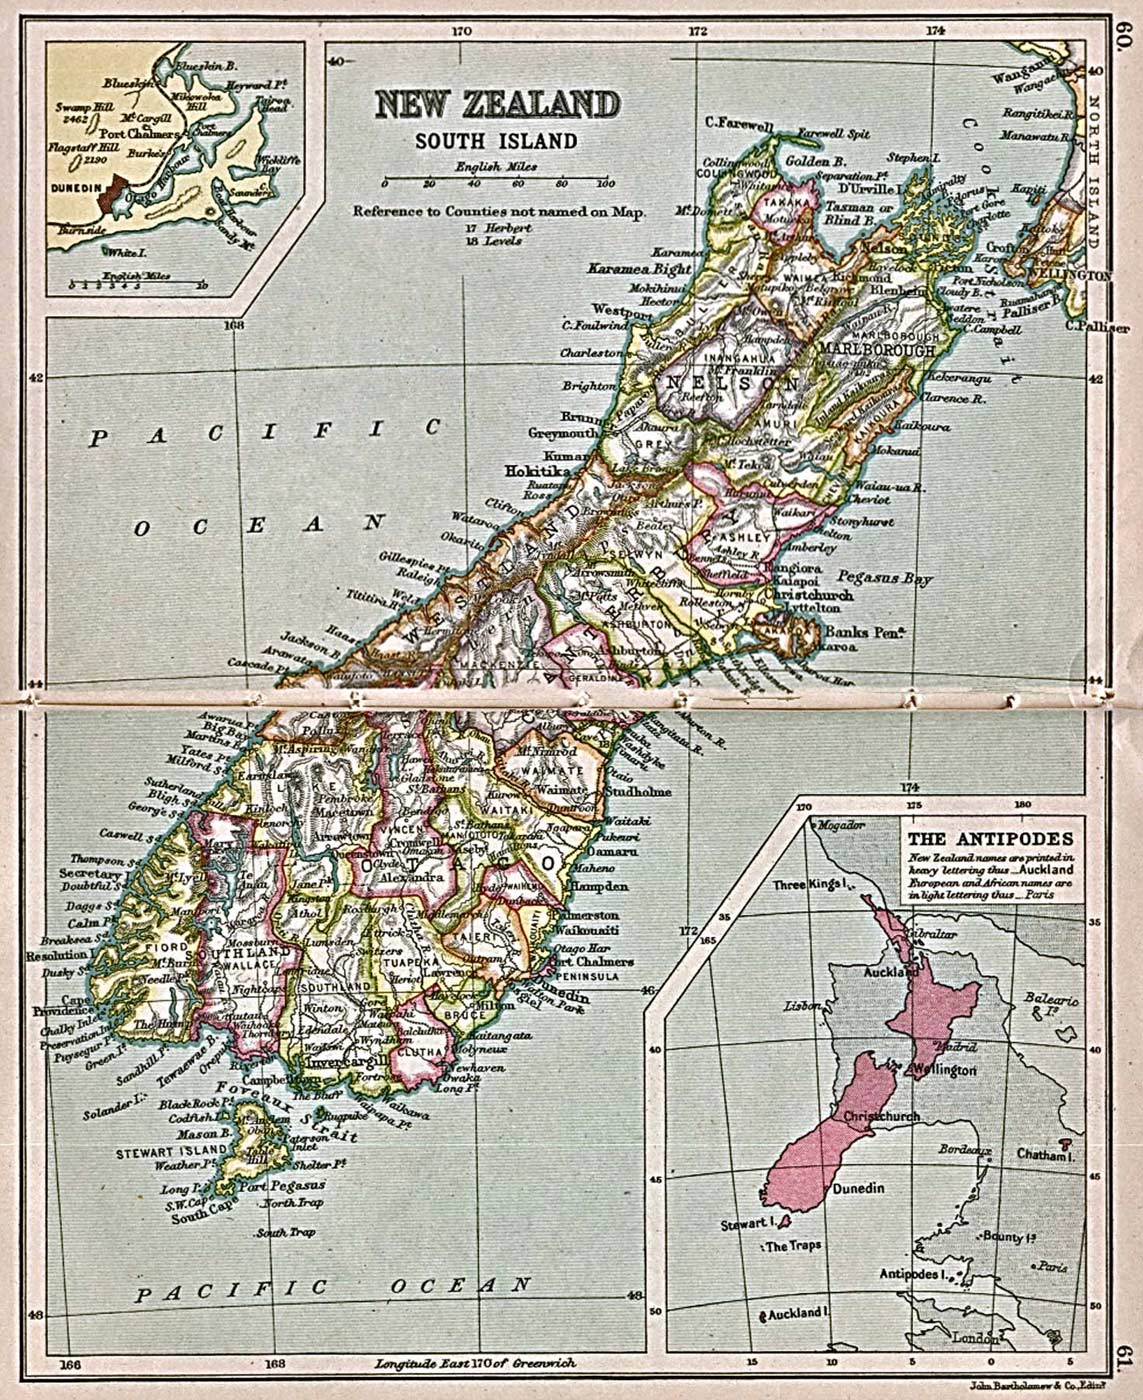 Historical Map New Zealand South Island (1913)